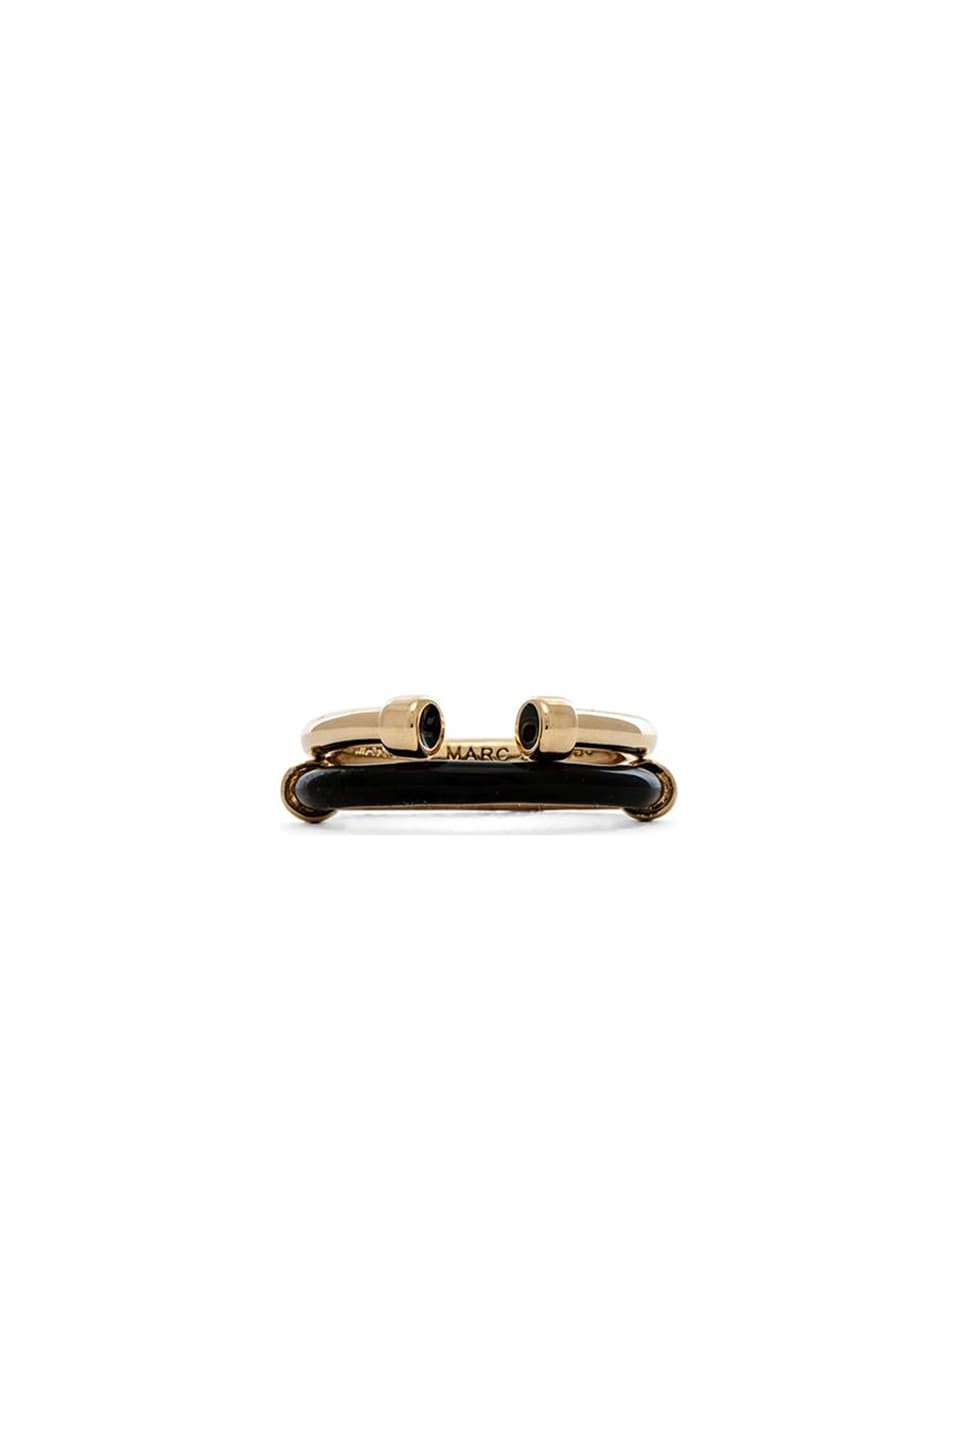 Marc by Marc Jacobs Lost & Found Hula Hoop Ring Set in Black